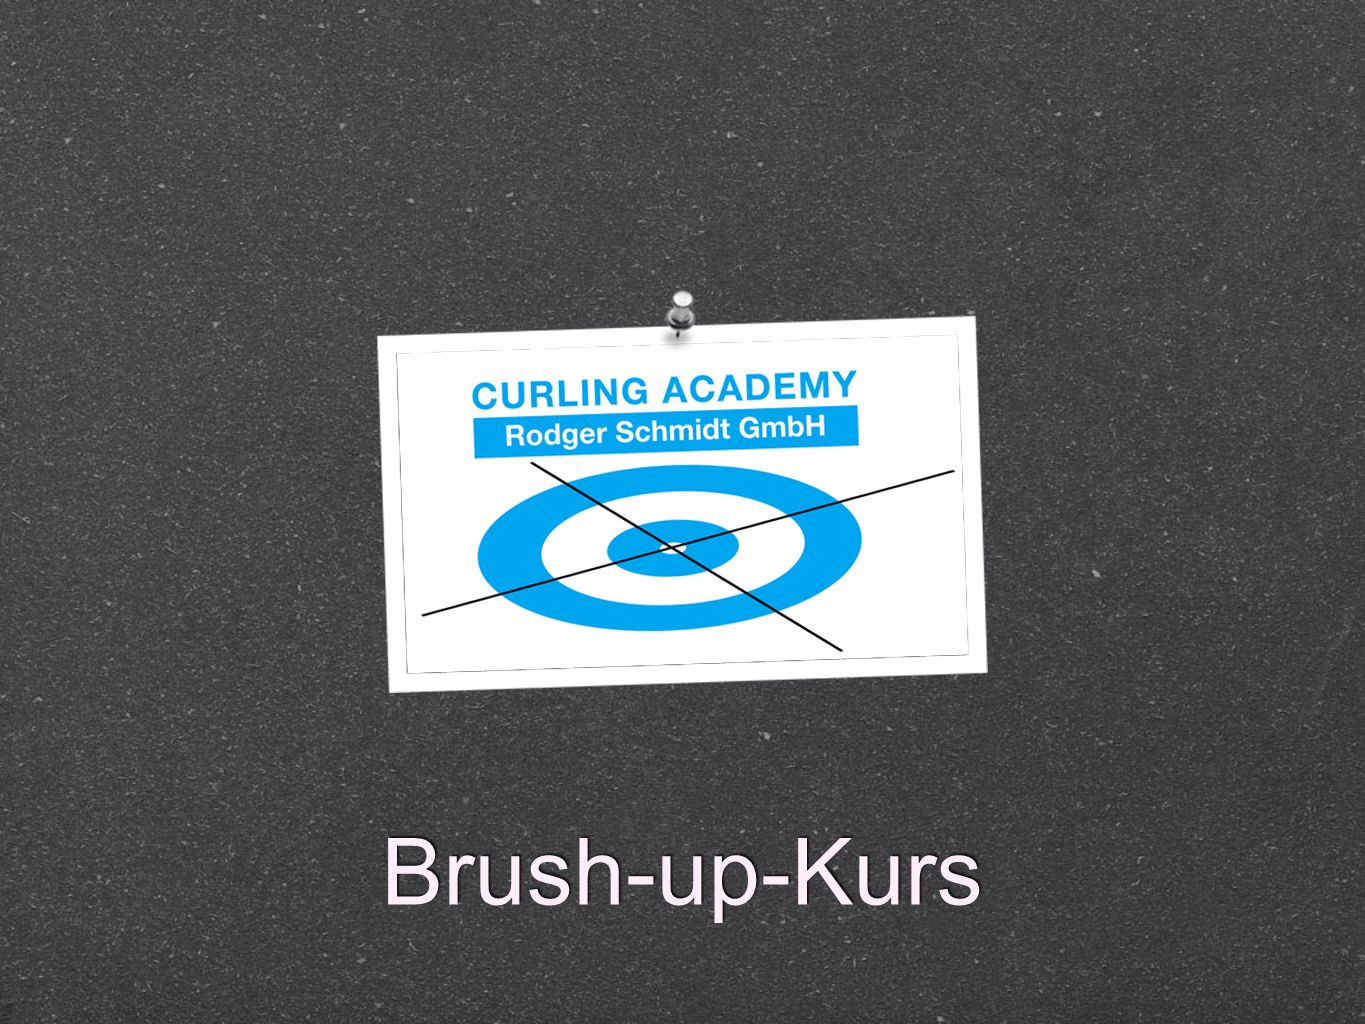 Brush-up-Kurs